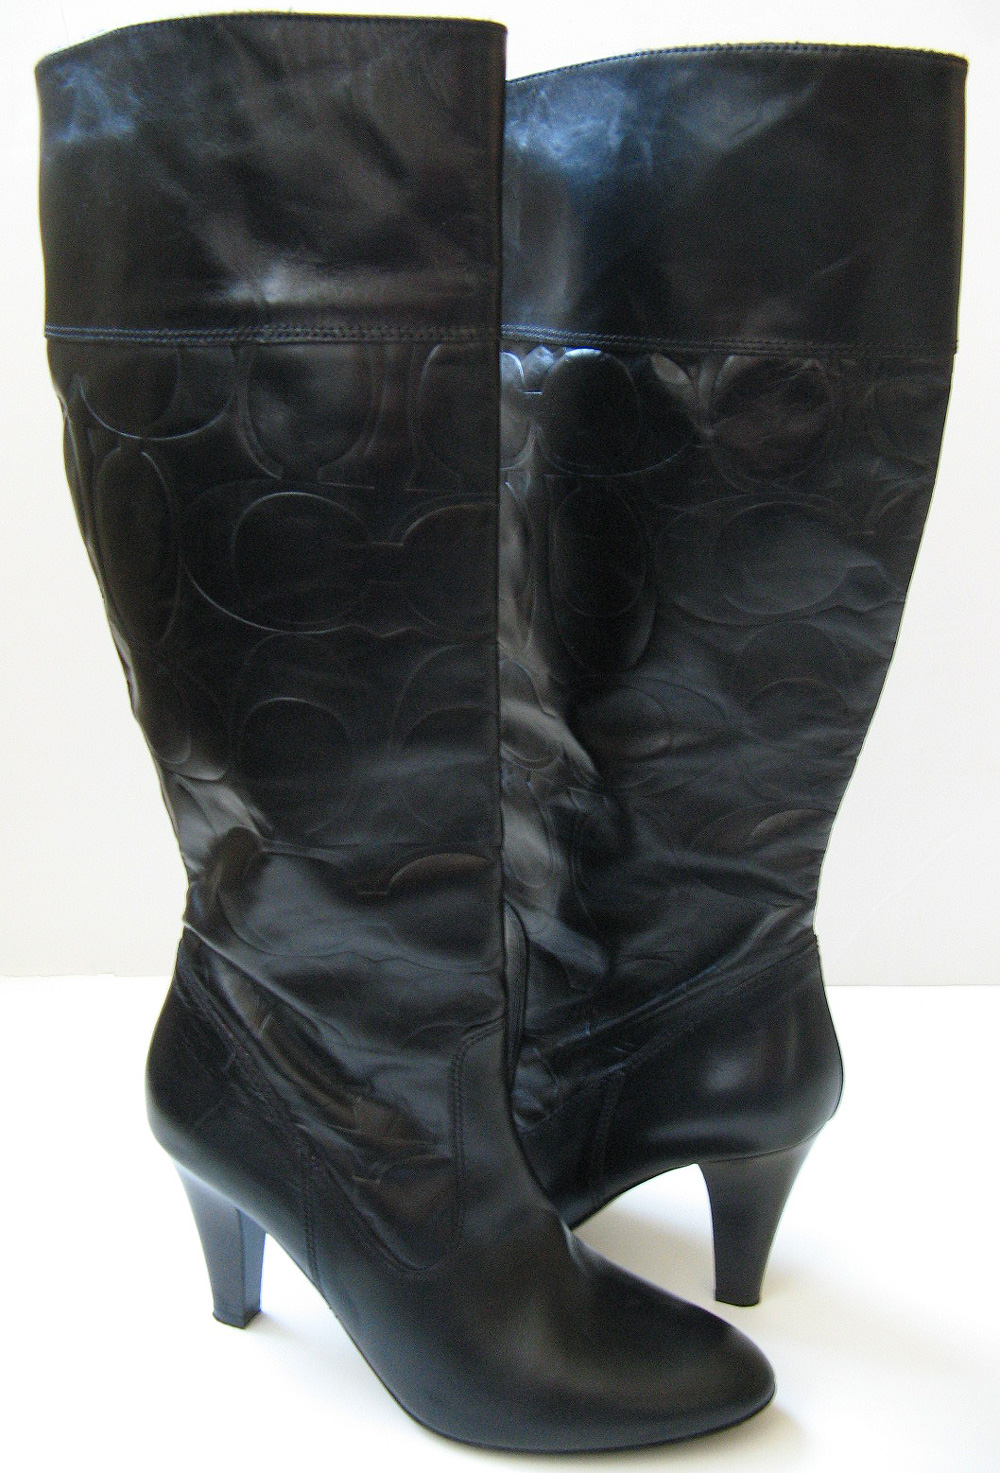 Coach Tall Knee High Boots Black Leather Boots Women S Size 9